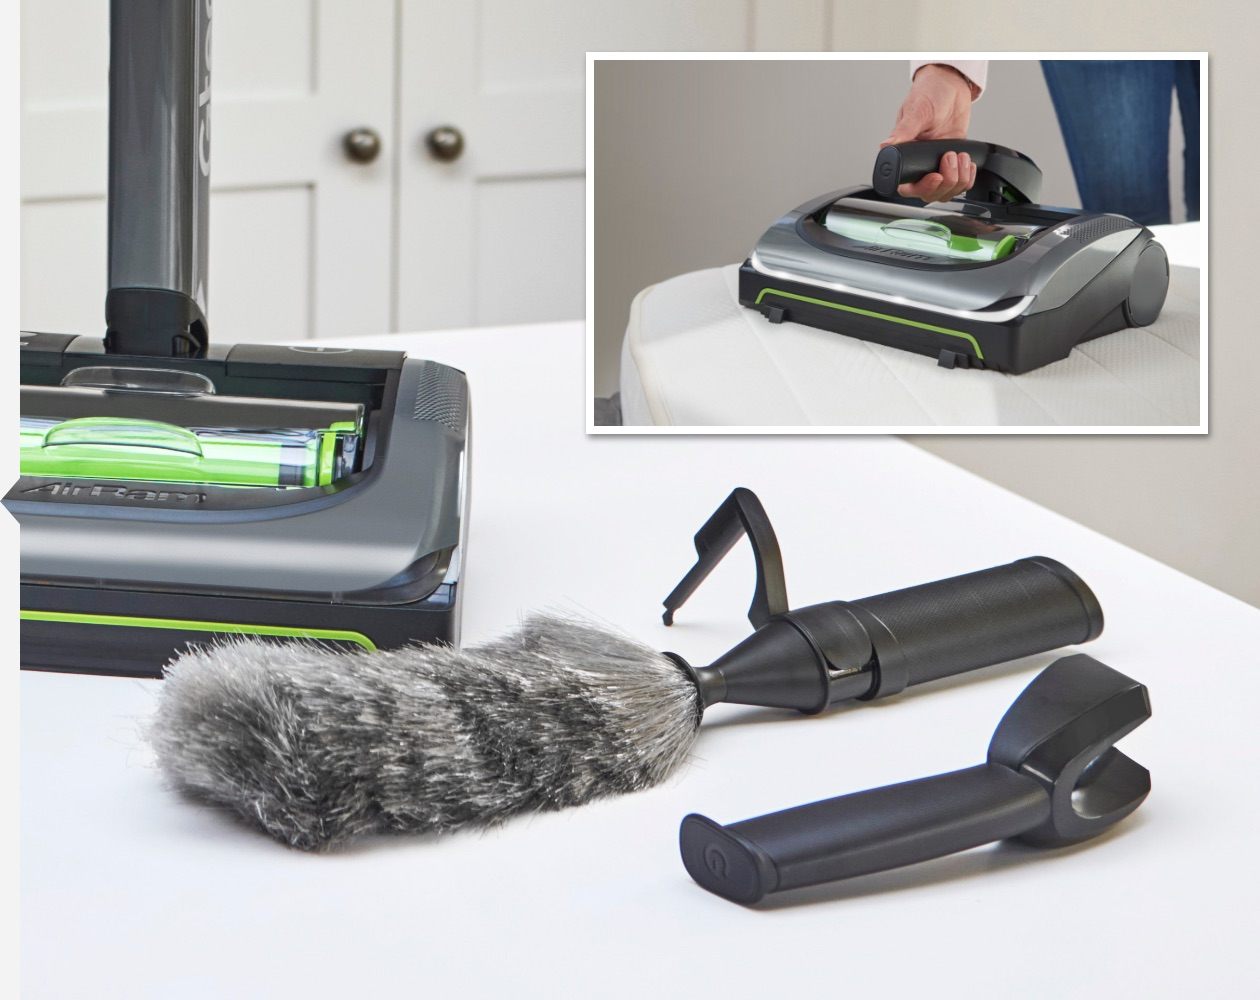 AirRam cordless vacuum cleaner and speed clean kit